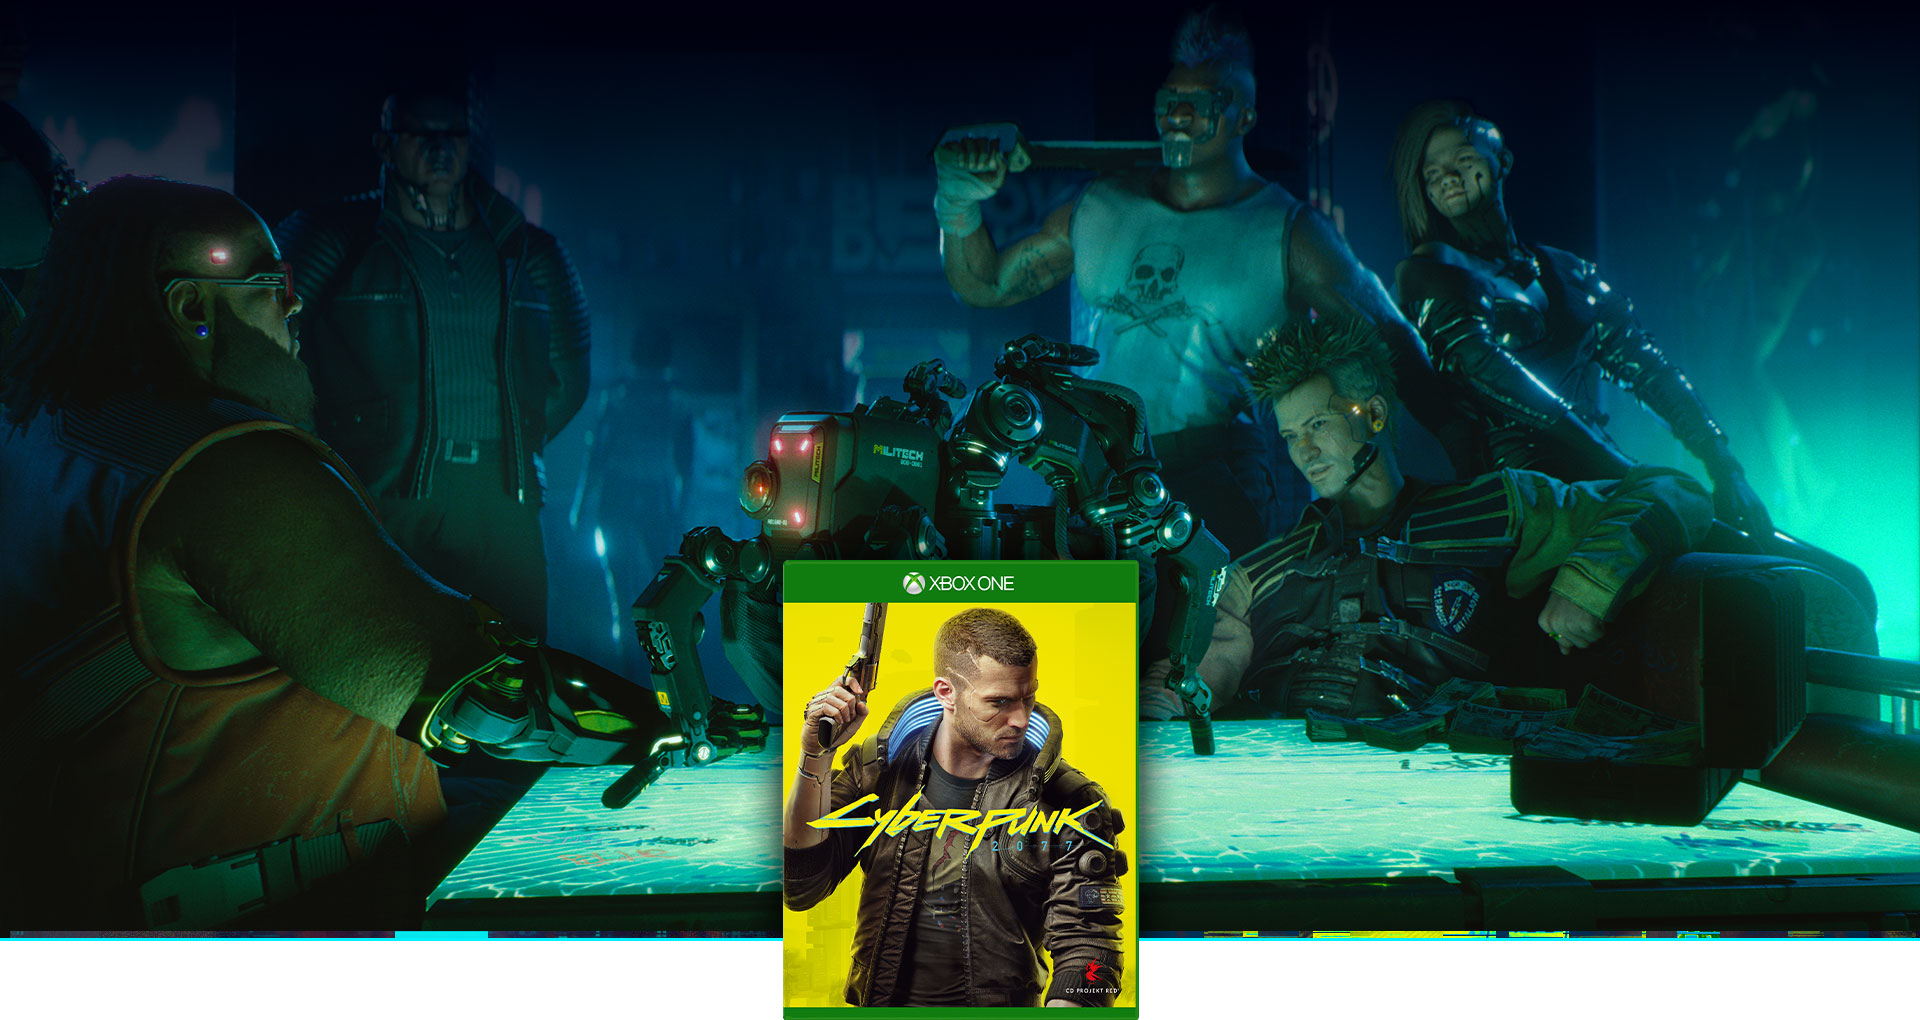 Cyberpunk 2077 boxshot, background of a group of cybernetic humans looking at a spider like drone on a table